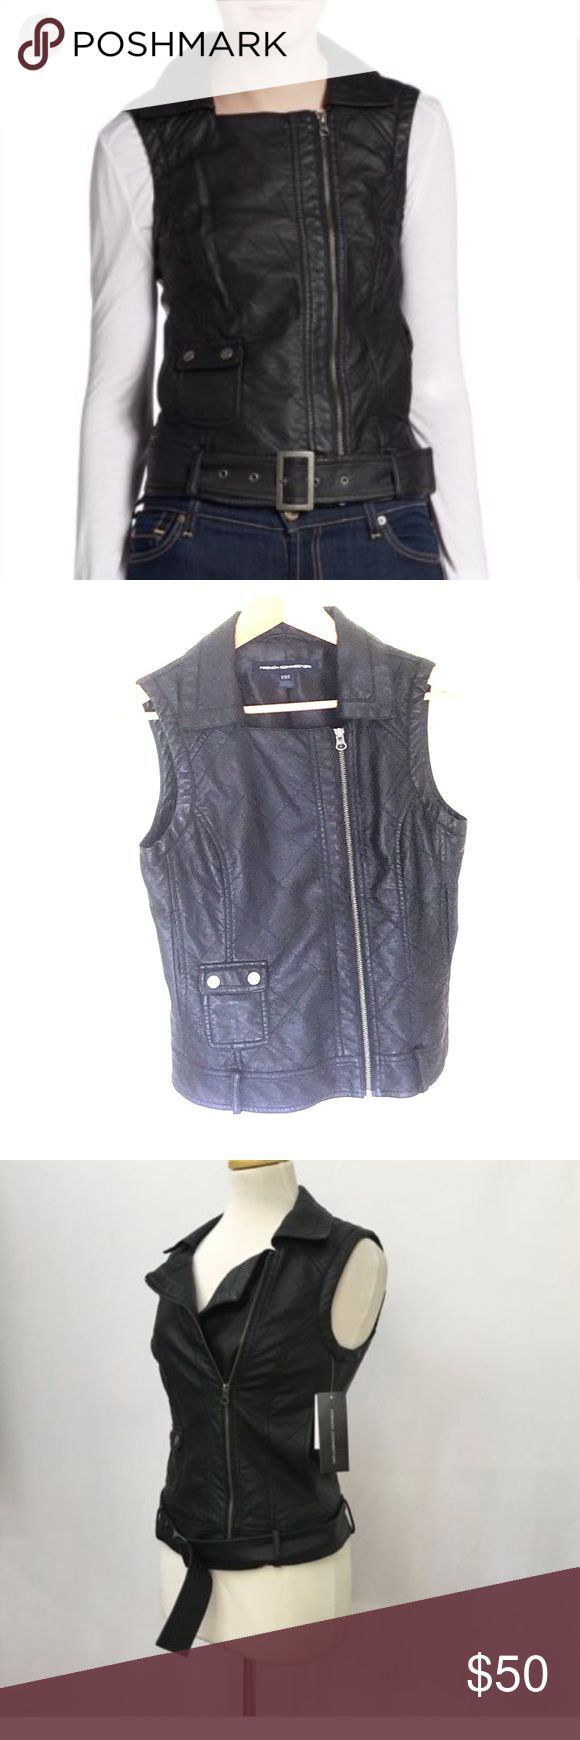 French Connection black quilted leather moto vest French Connection black faux leather moto vest. Quilted style. Belt missing. Size 4 US. Great condition. Love this! French Connection Jackets & Coats Vests